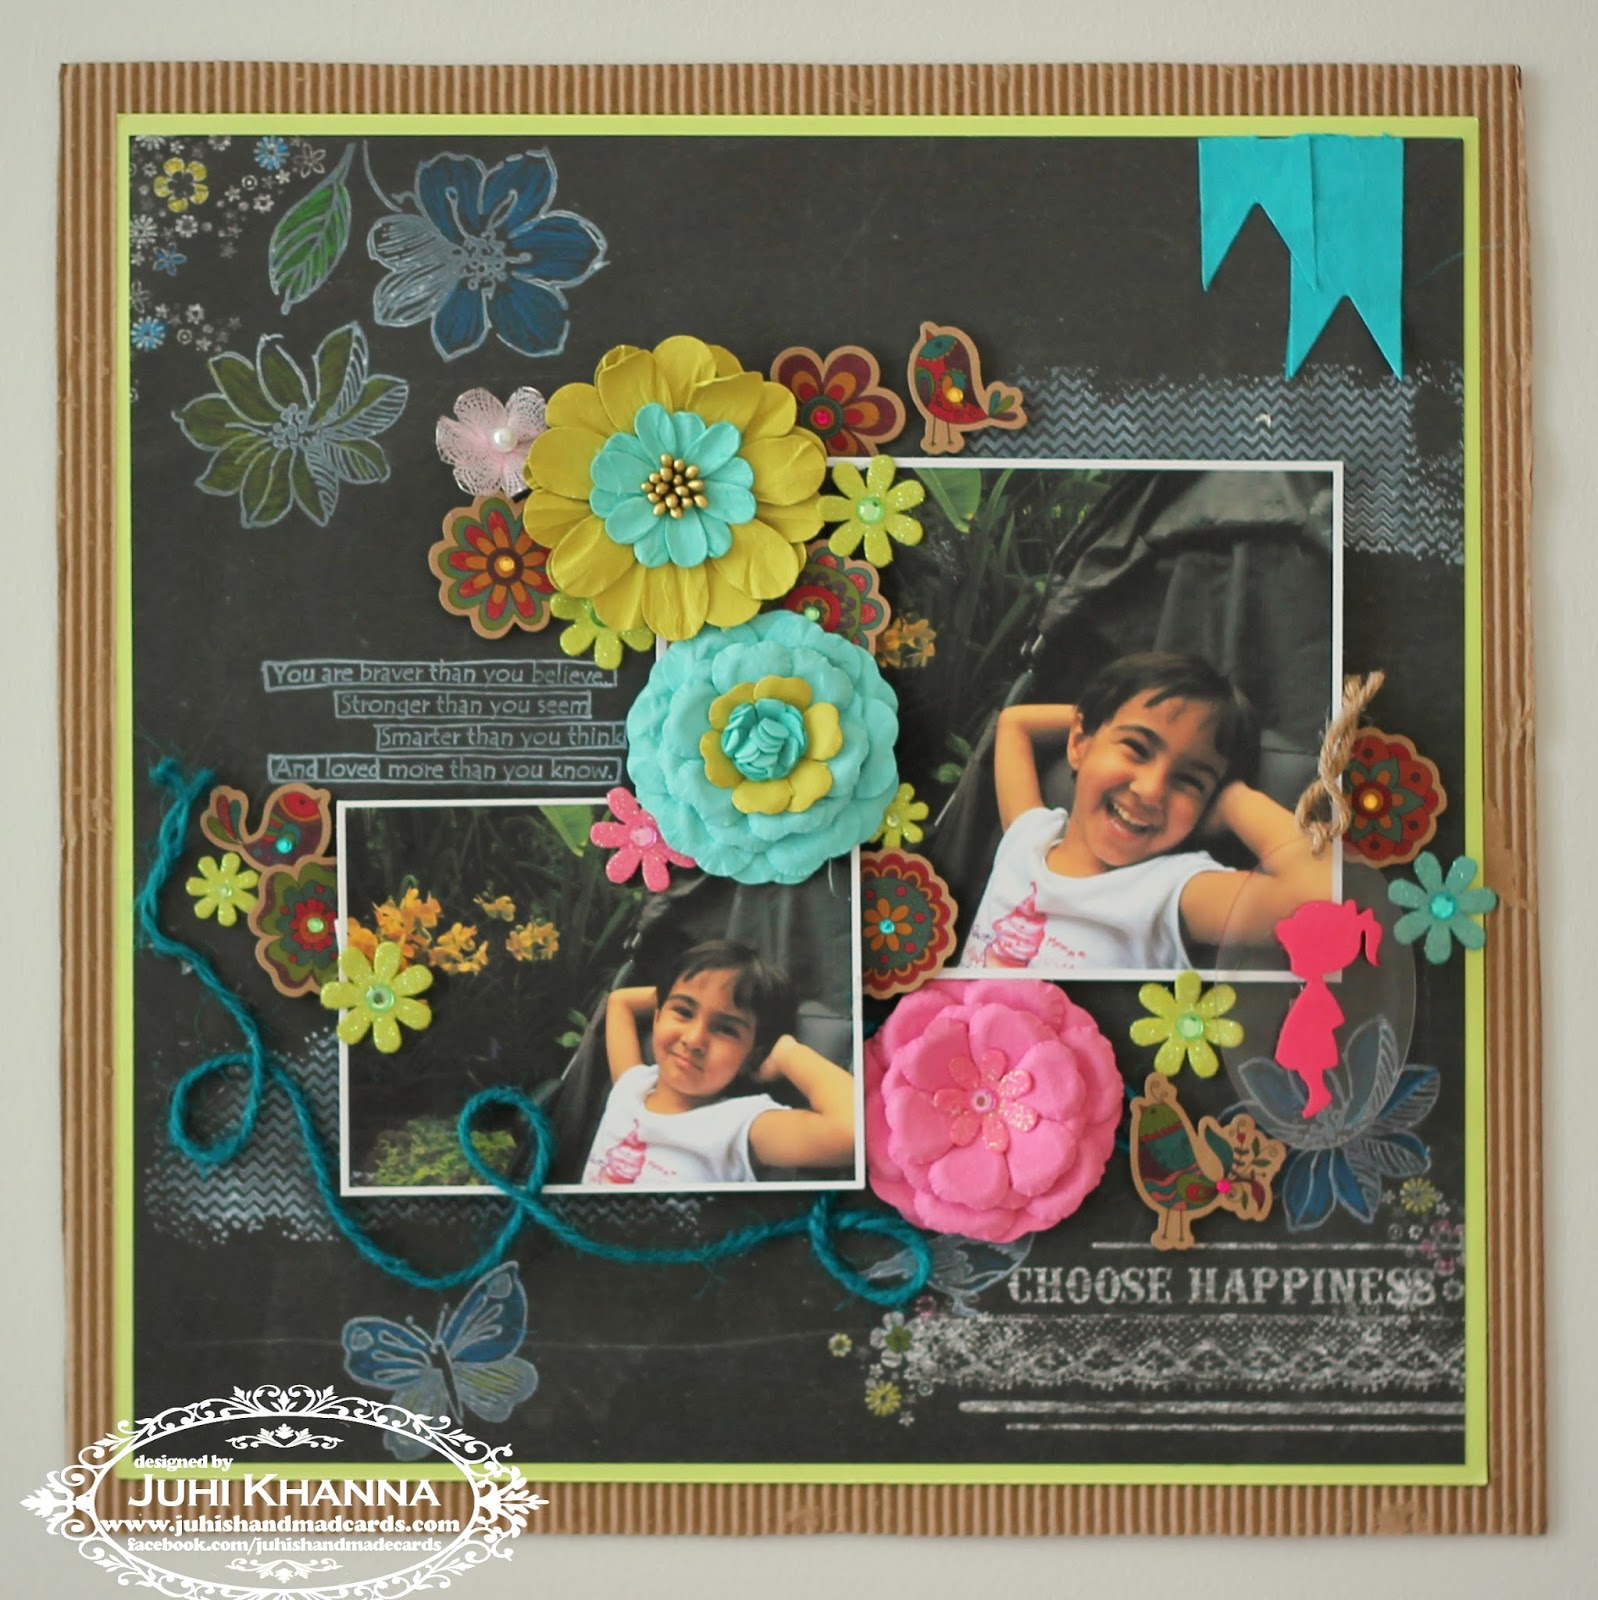 How to make scrapbook video - I Am More Of A Card Maker Than A Scrapbooker But I Really Enjoyed Making This One It Features Pictures Of My Daughter When We Visited The Singapore